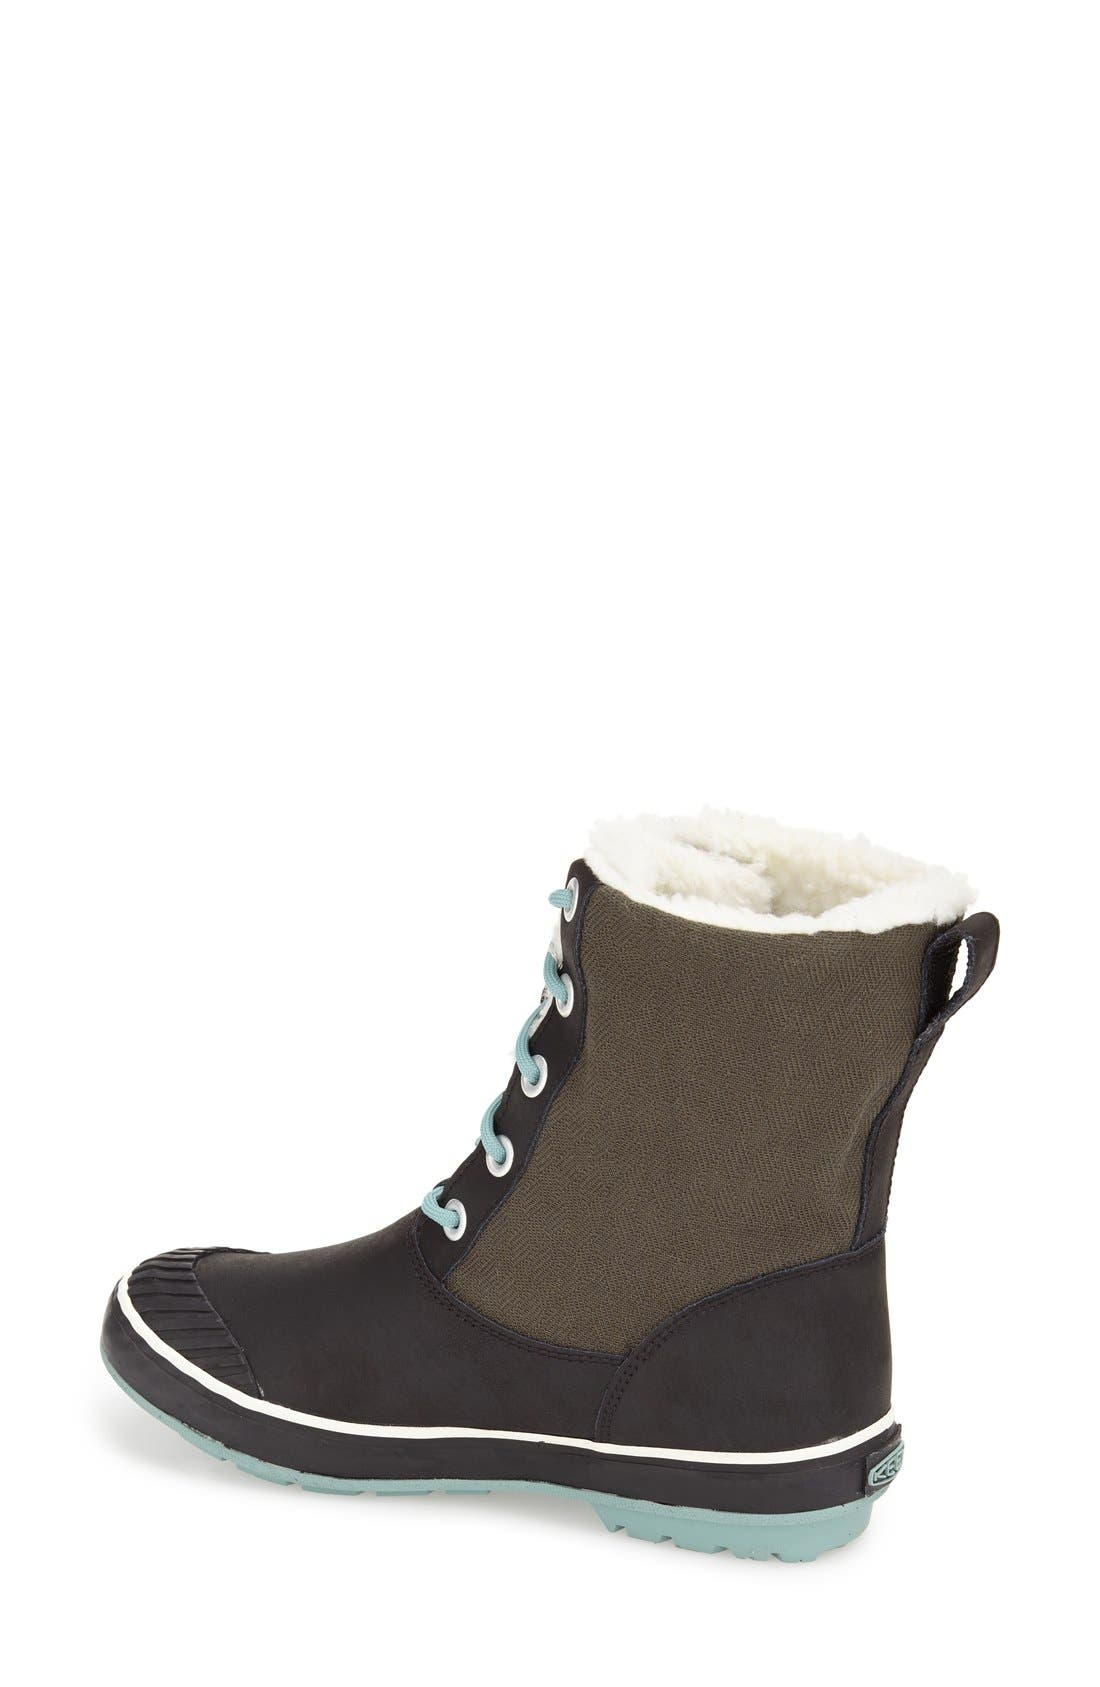 'Elsa' Waterproof Boot,                             Alternate thumbnail 2, color,                             Forset Night